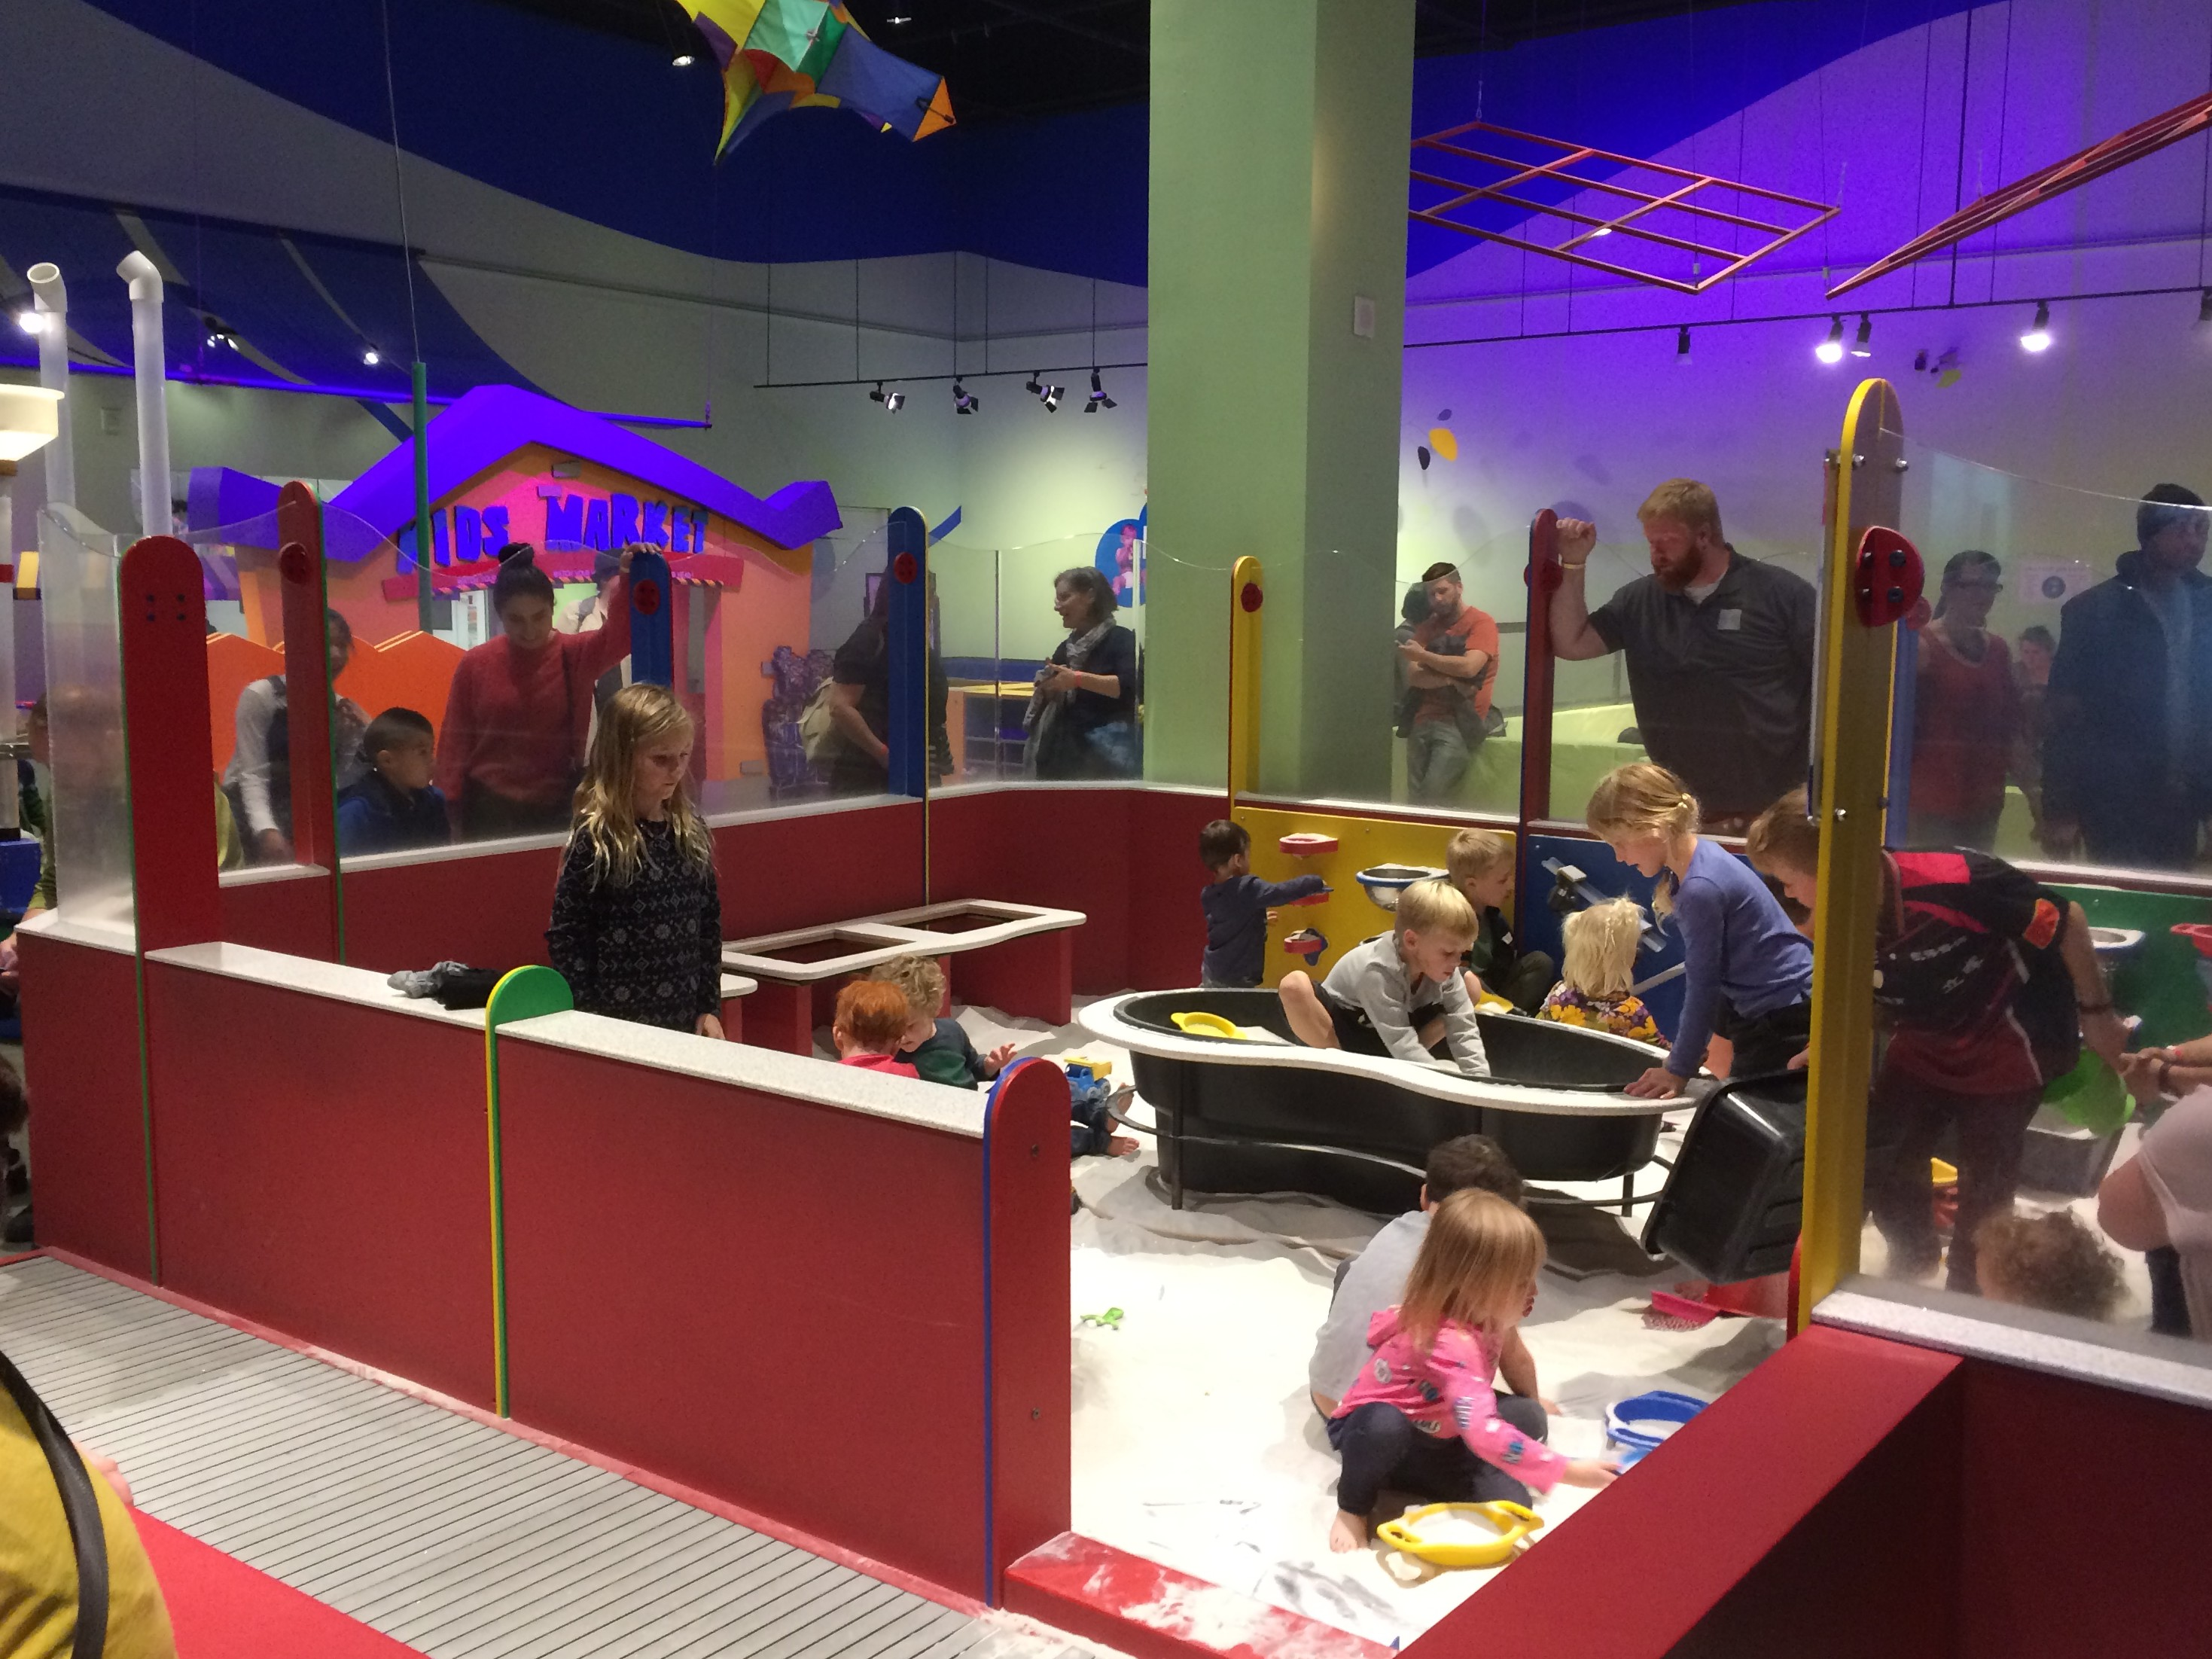 Science Playground at OMSI